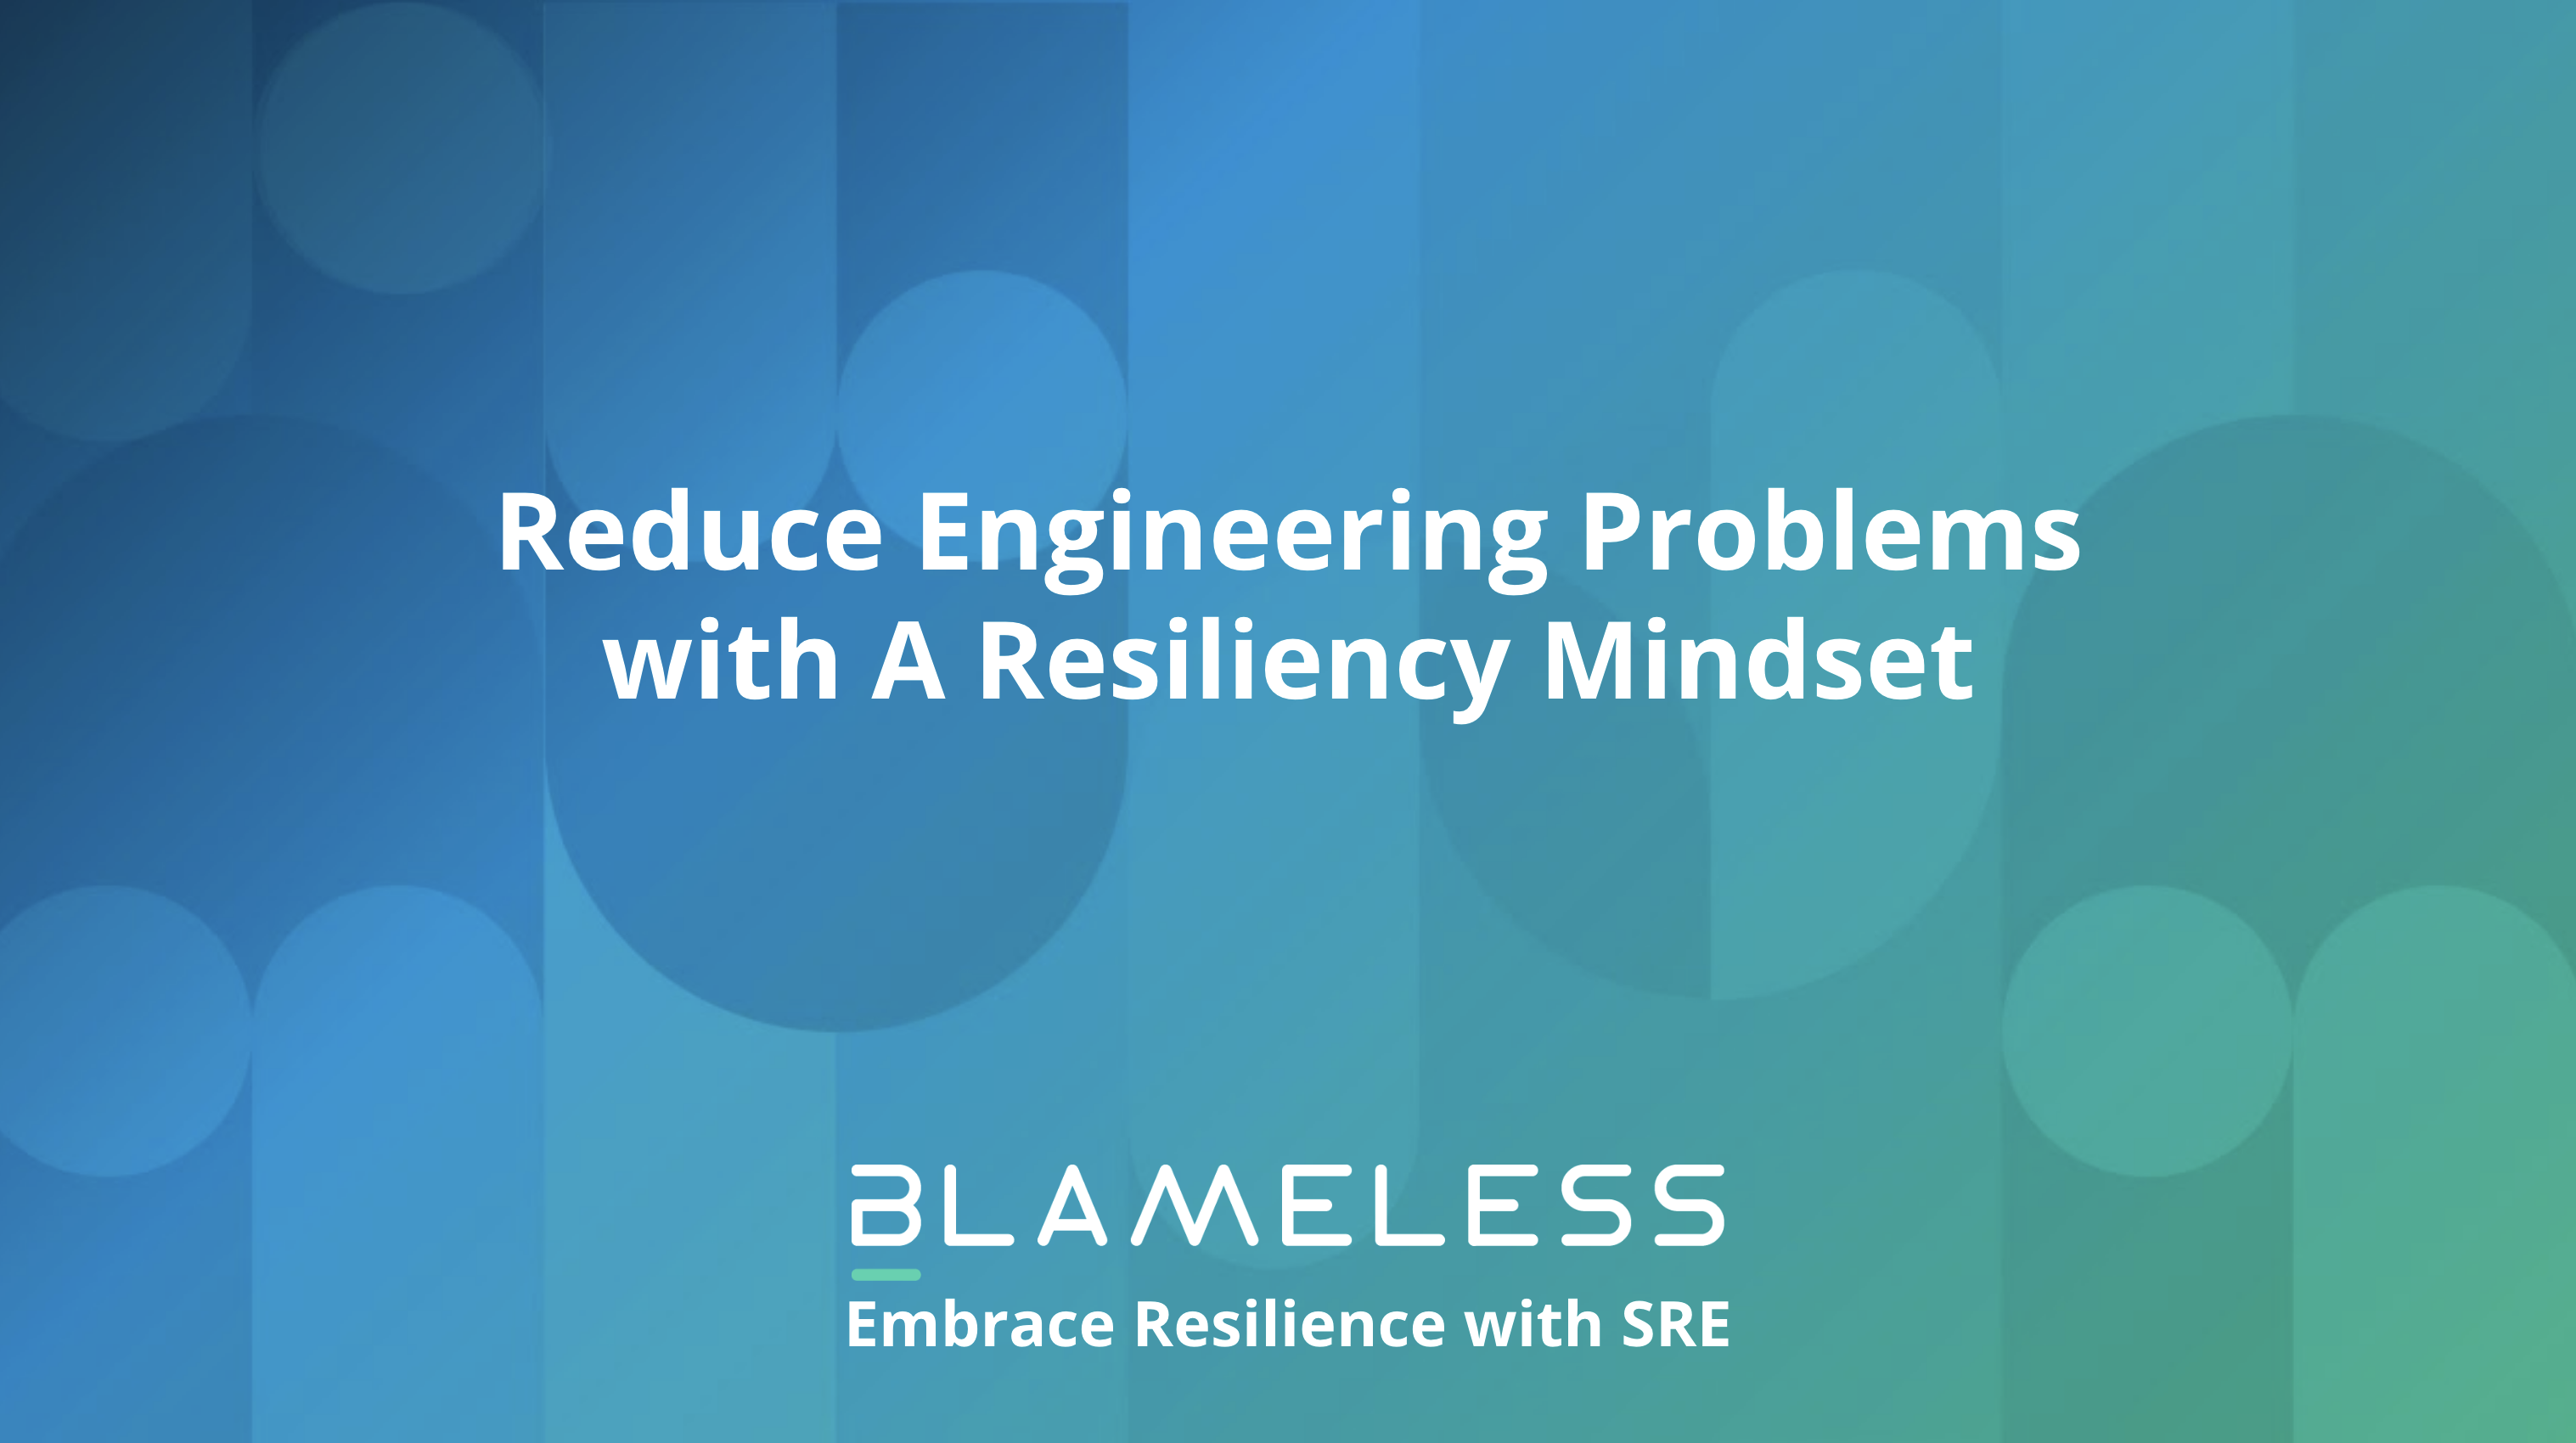 How to Reduce Engineering Waste: Embrace Resilience